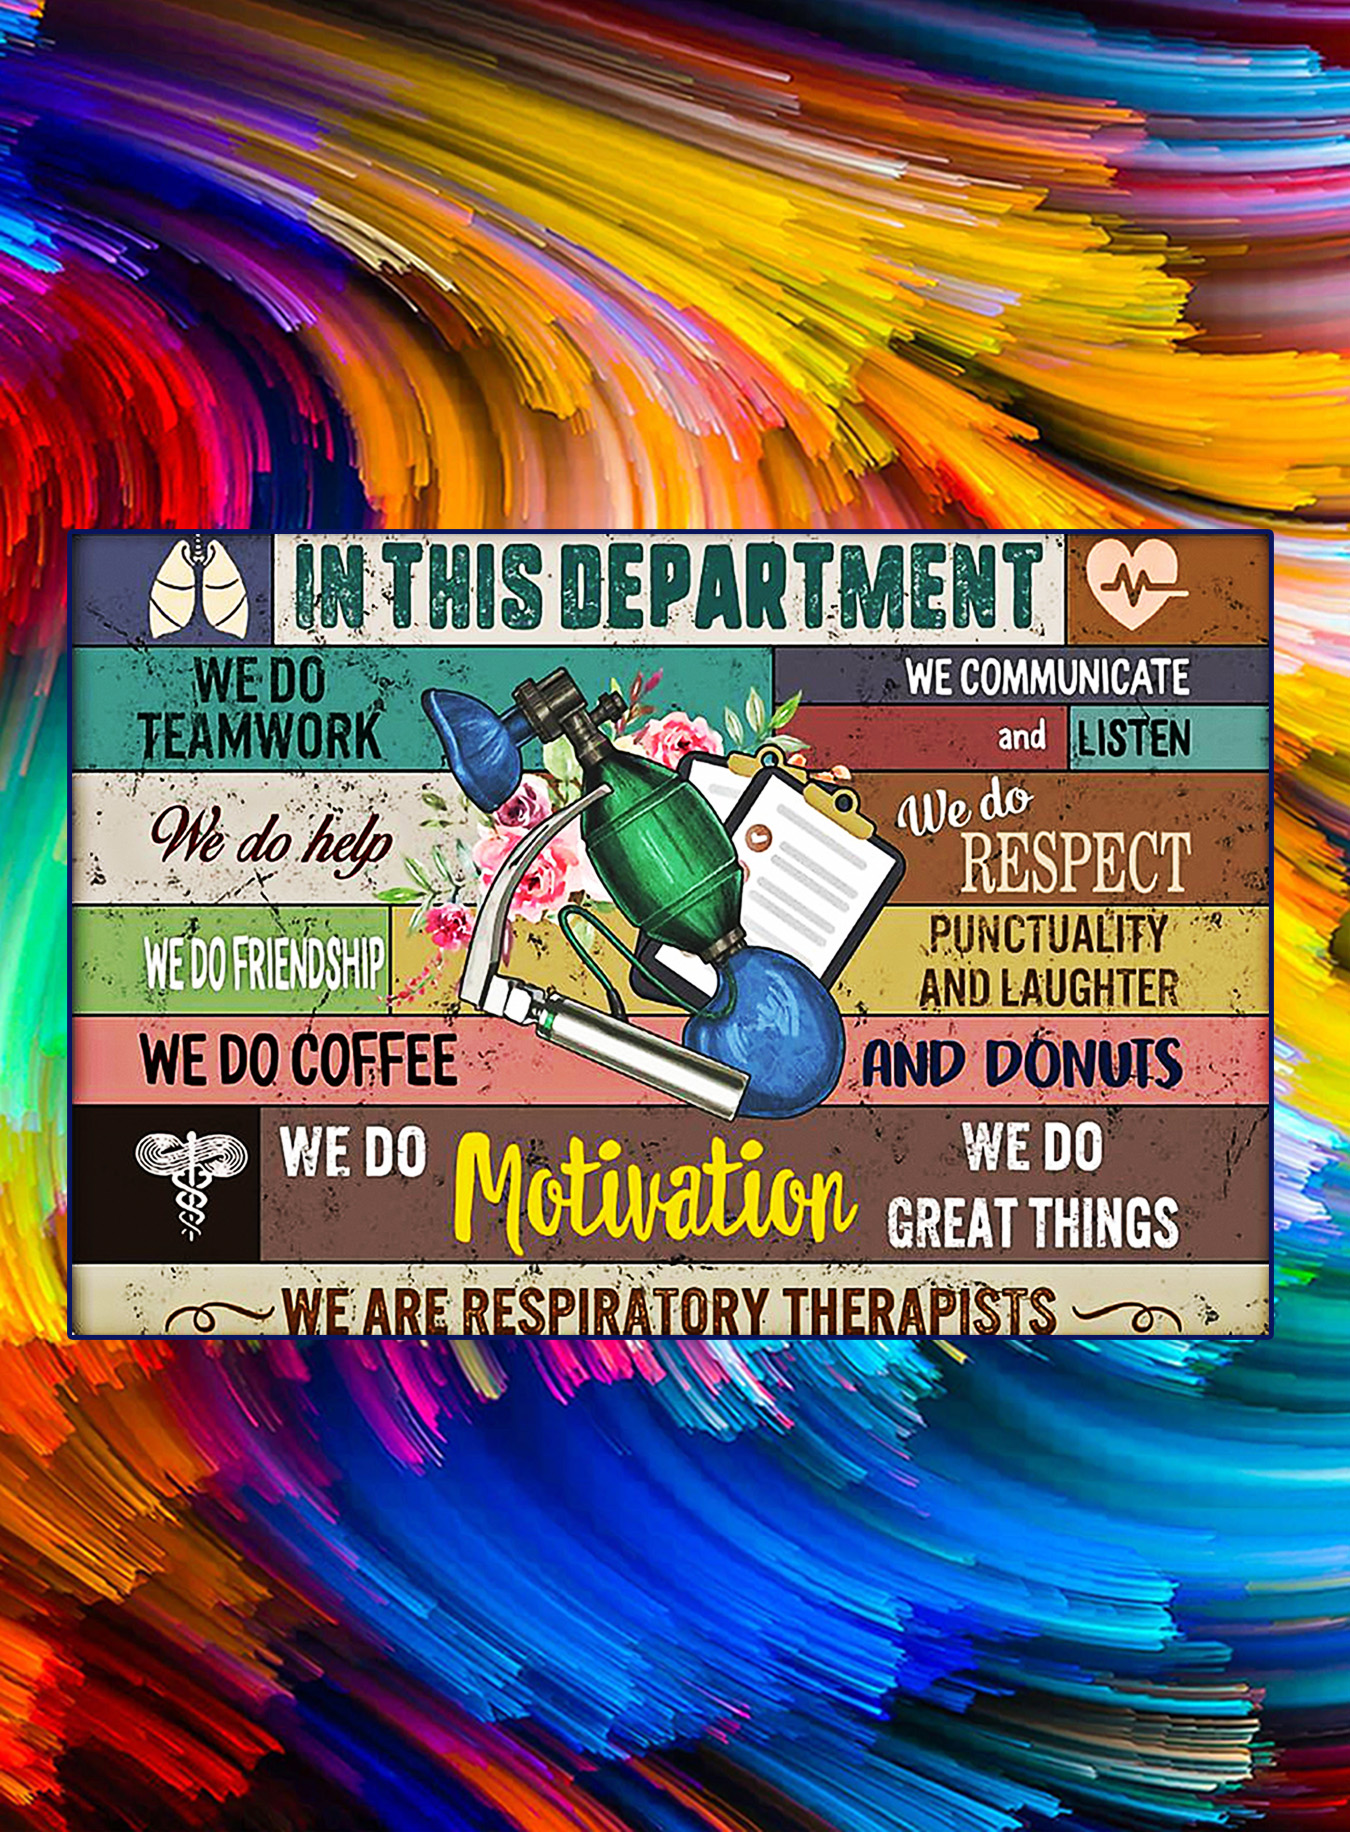 In this department we are respiratory therapists poster - A3